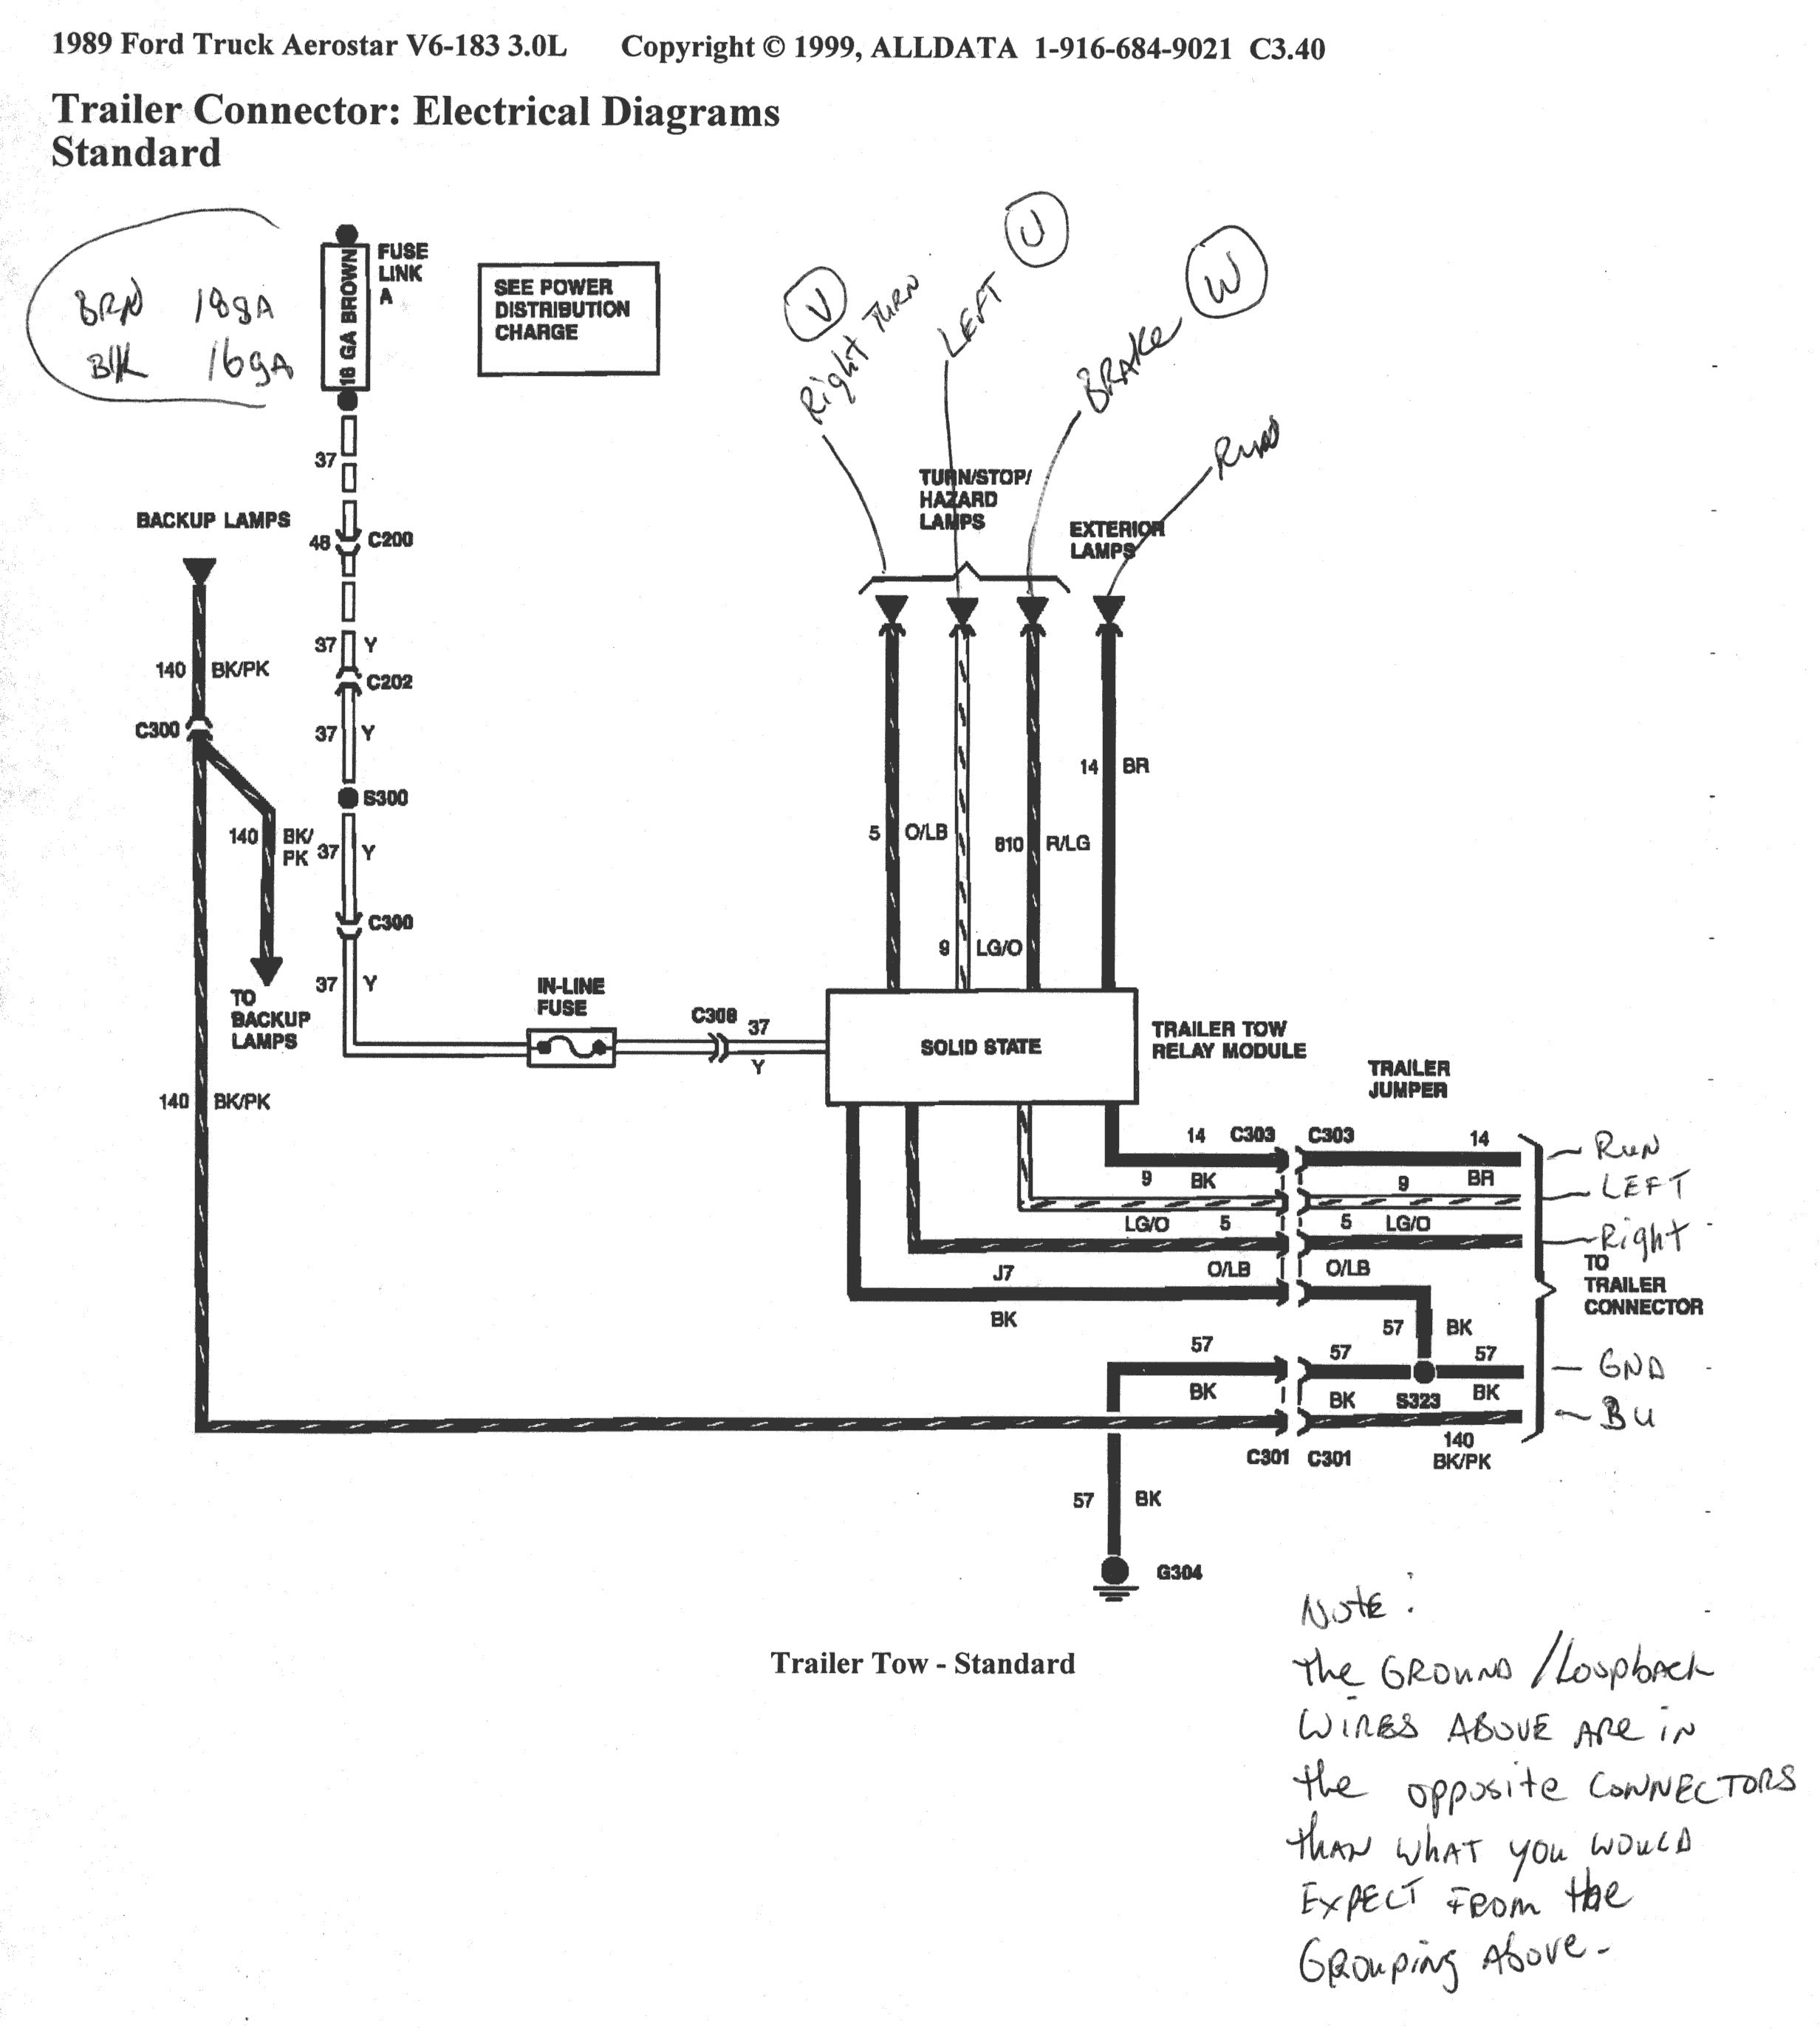 2001 Ford F250 Trailer Wiring Diagram Gallery